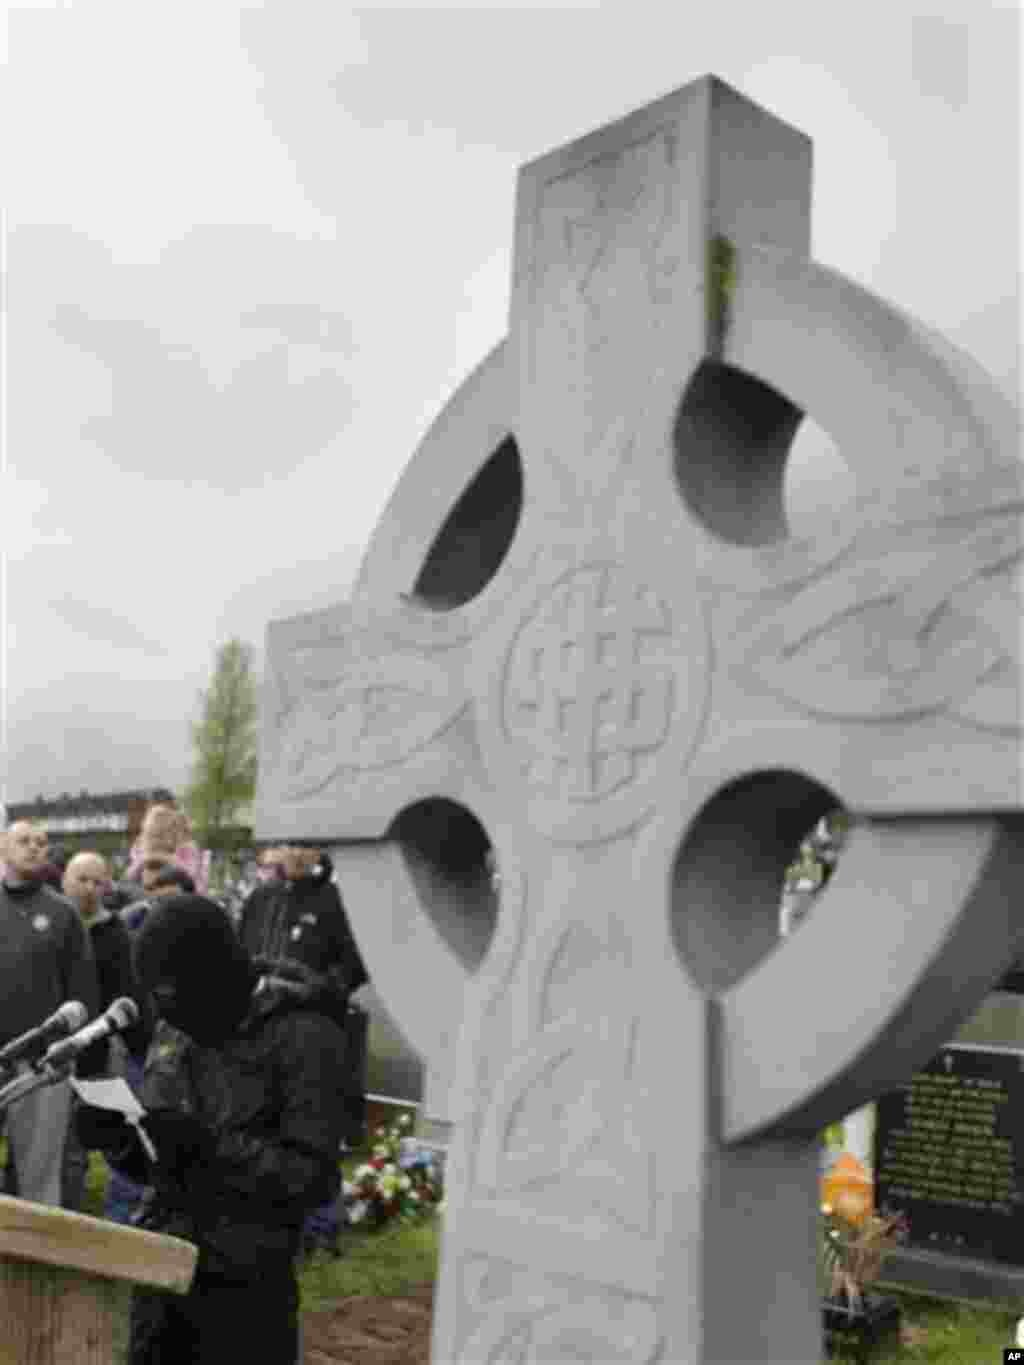 A masked member from the dissident terror group the Real Irish Republican Army (RIRA) reads a statement to supporters at Creggan Cemetery, Londonderry, Northern Ireland, Monday, April 9, 2012. Hundreds of dissident sympathizers gathered Monday for a comm